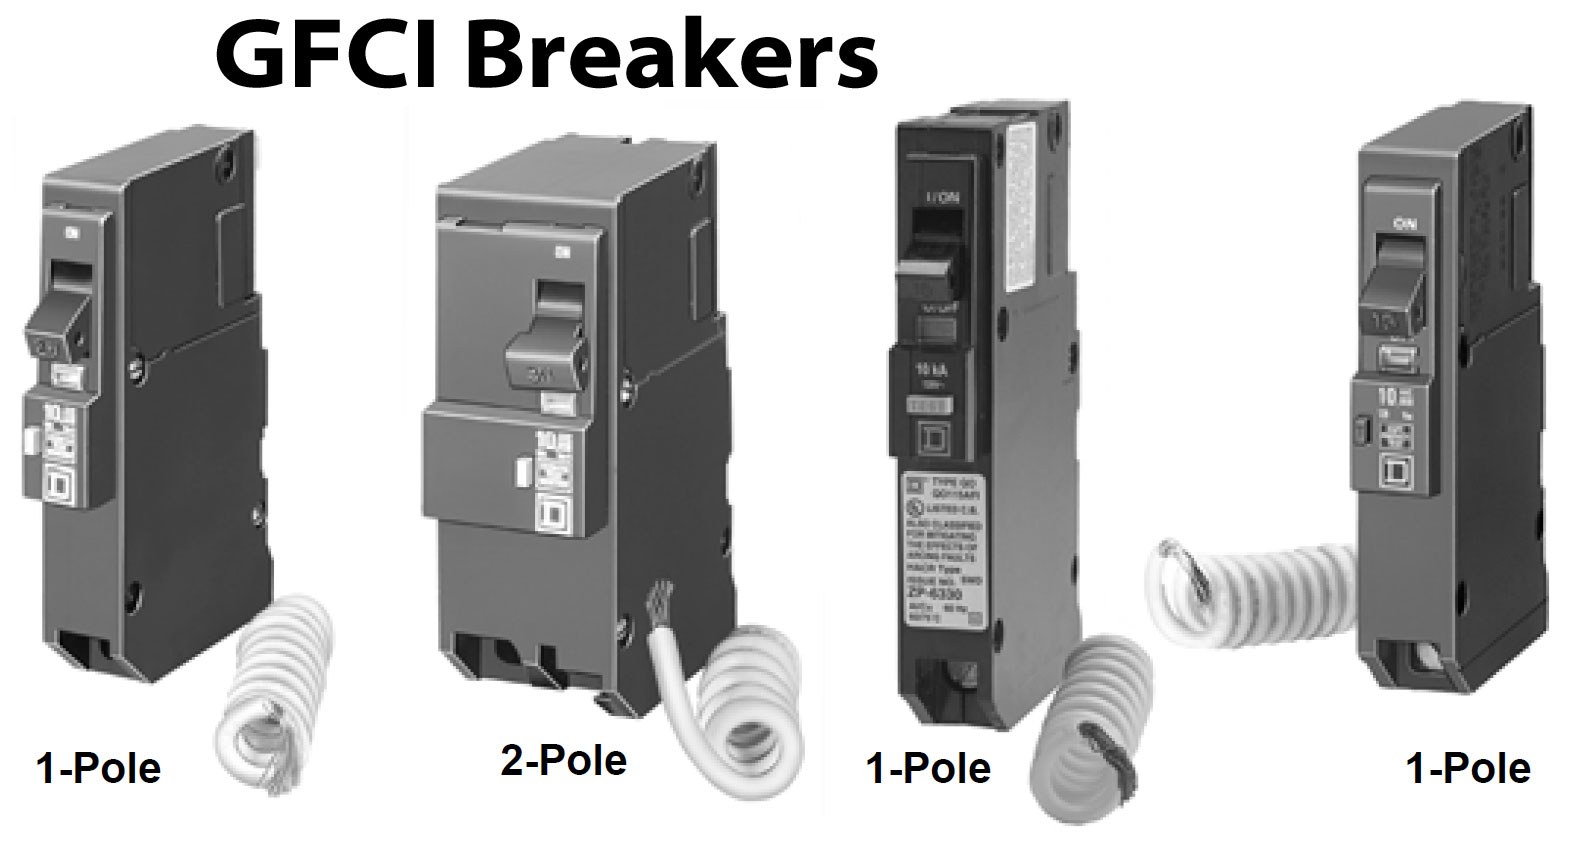 GFCI breakers 1000 how to install and troubleshoot gfci eaton gfci breaker wiring diagram at mifinder.co